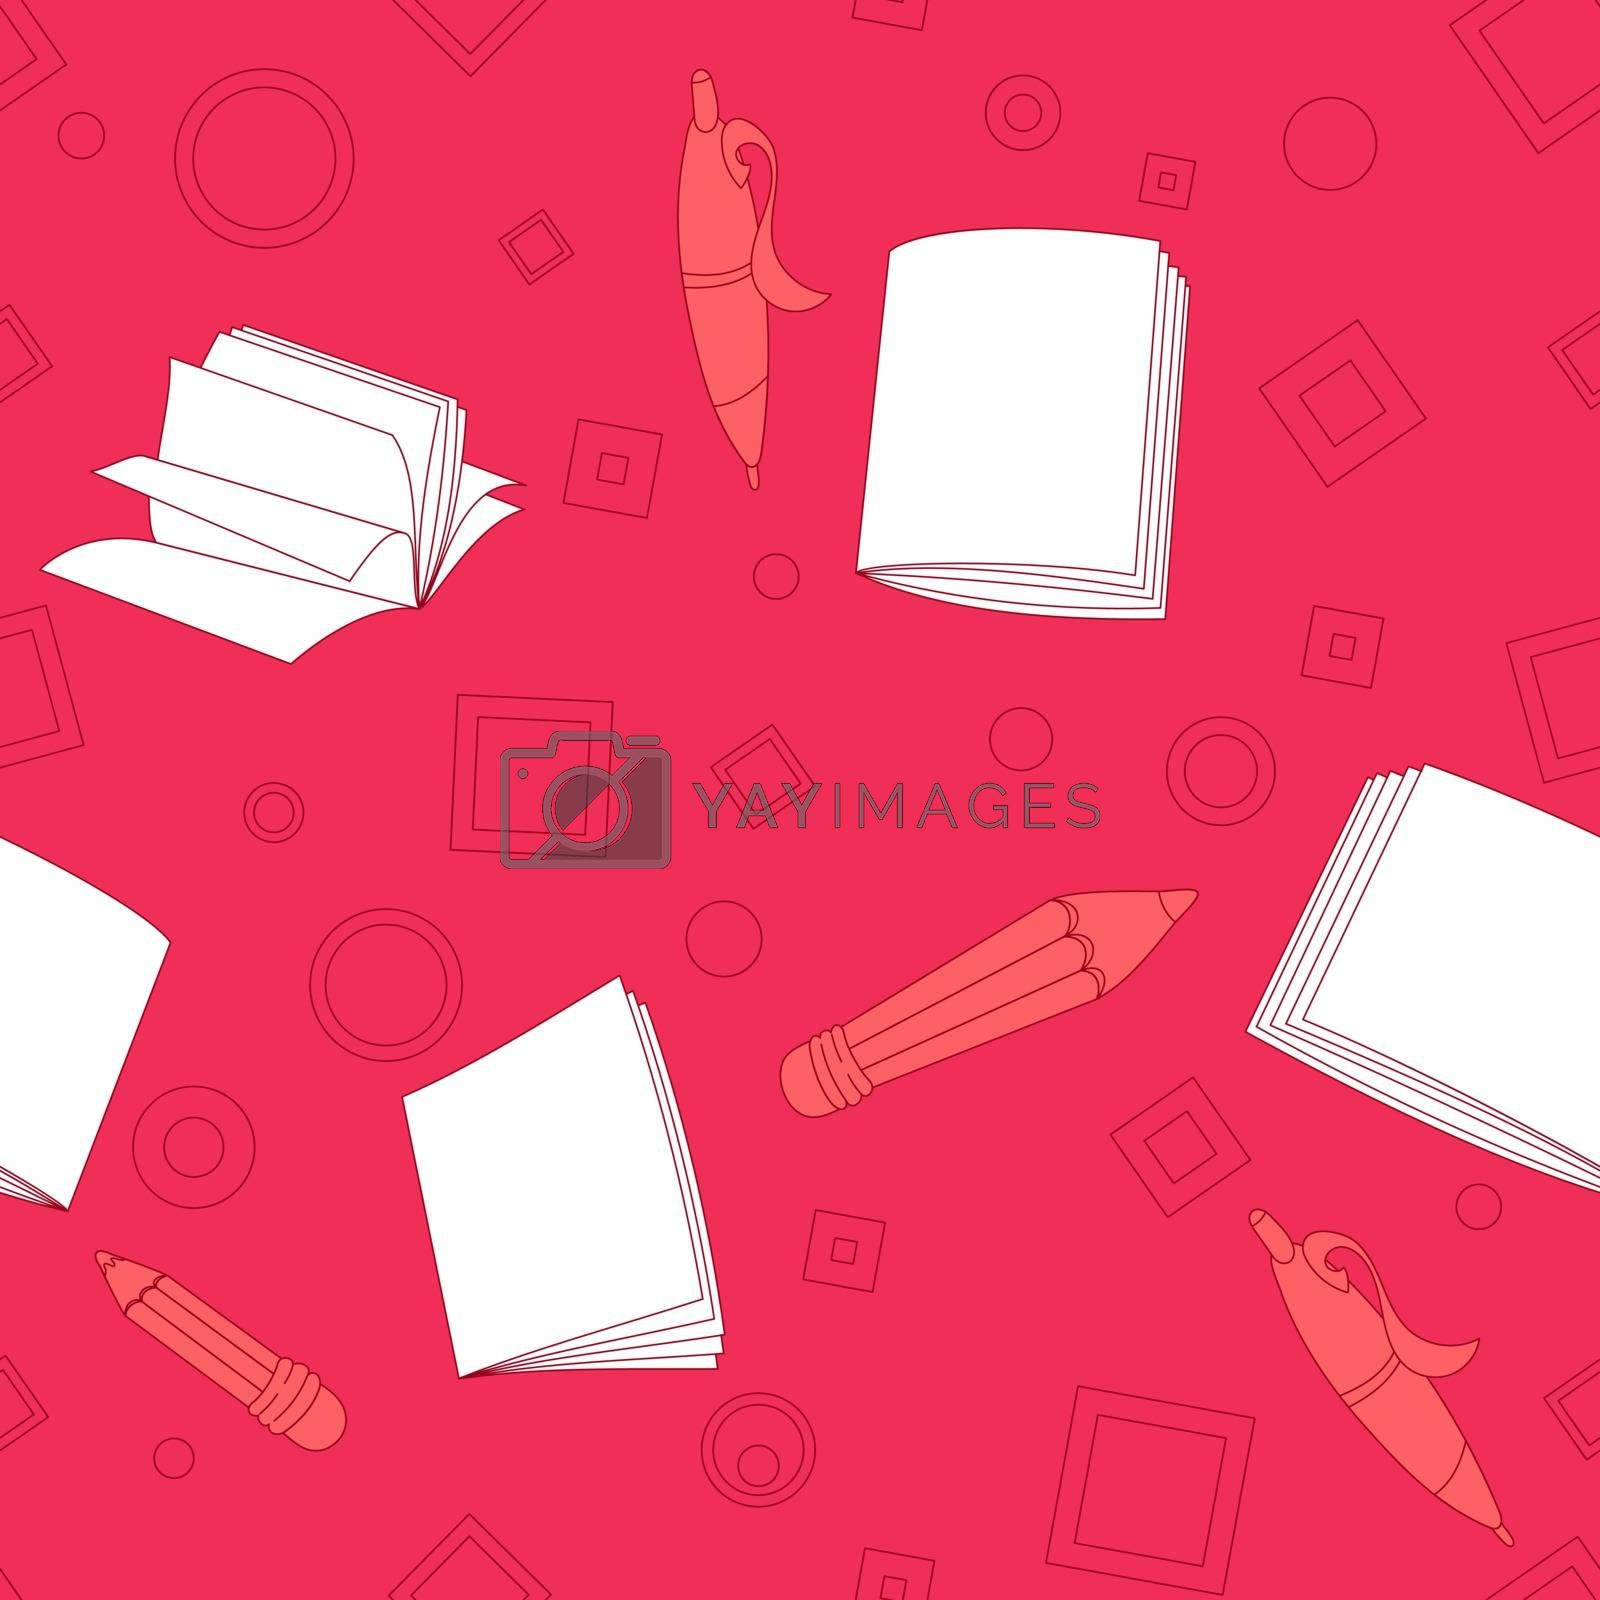 School notes seamless pattern on pink background. Tools for drawing. Cartoon color background.